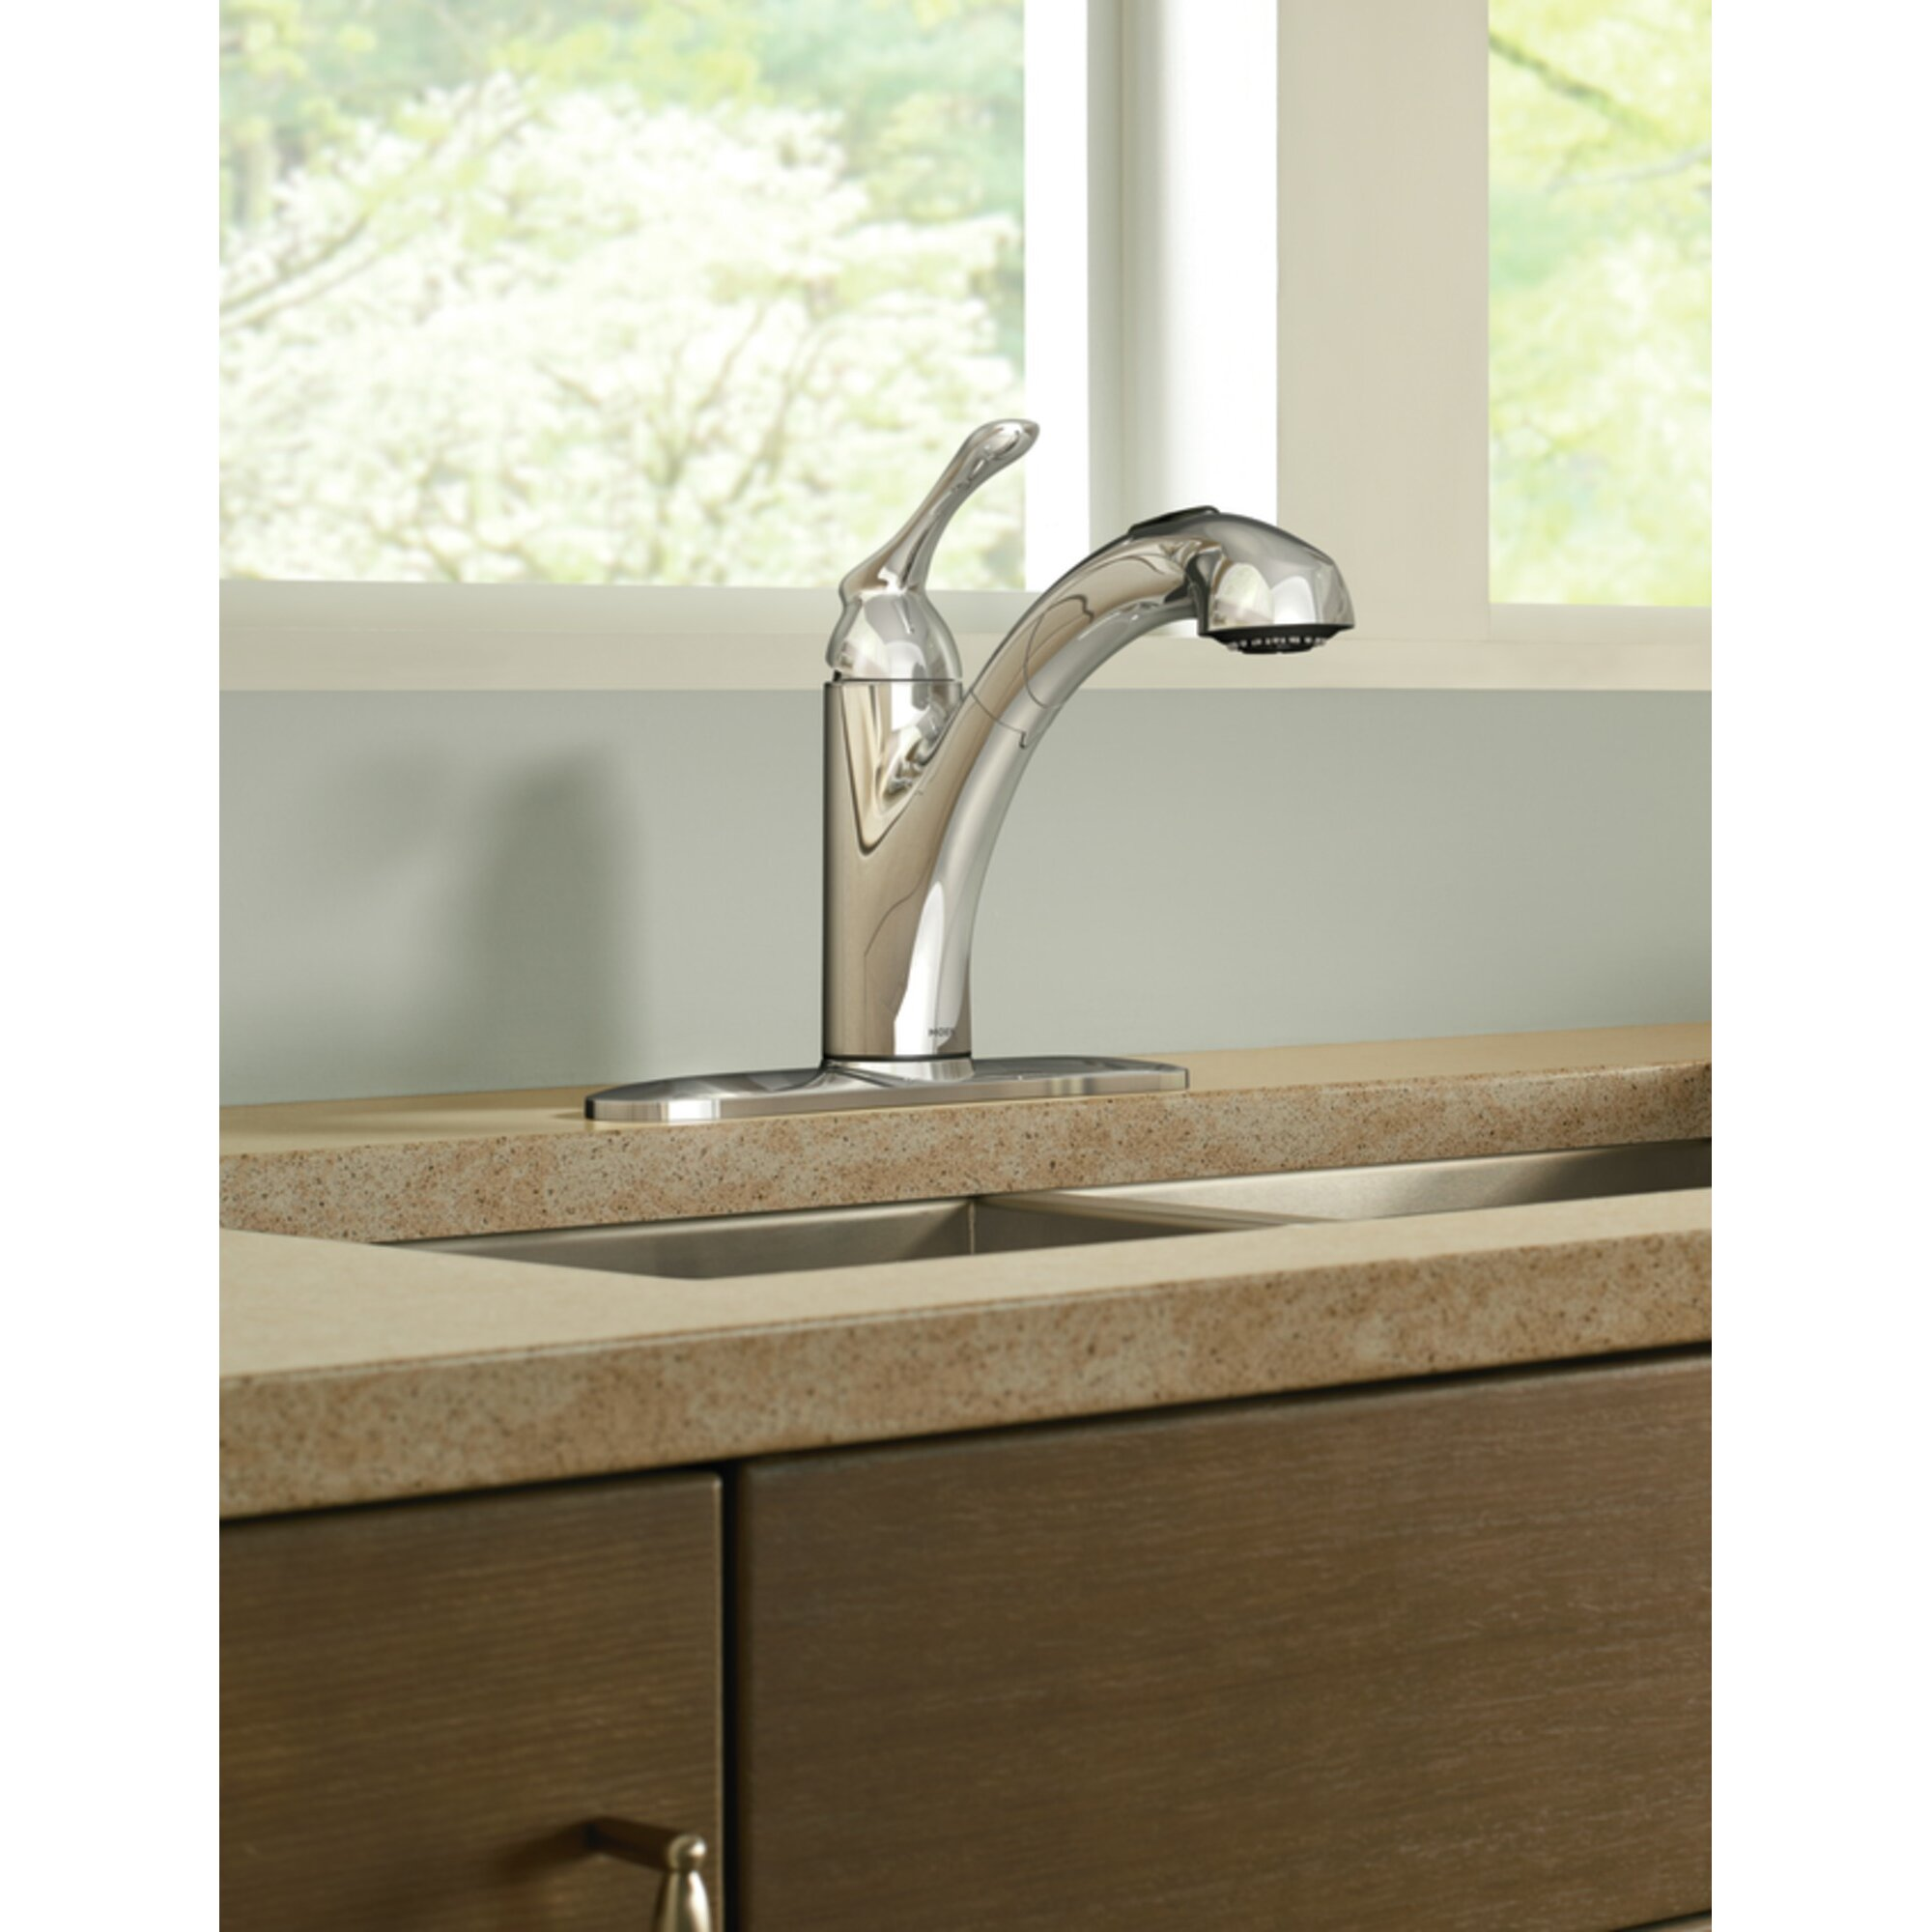 moen steel with of faucet dulichdaiphong stainless banbury bathroom design marvelous faucets com kitchen also modern